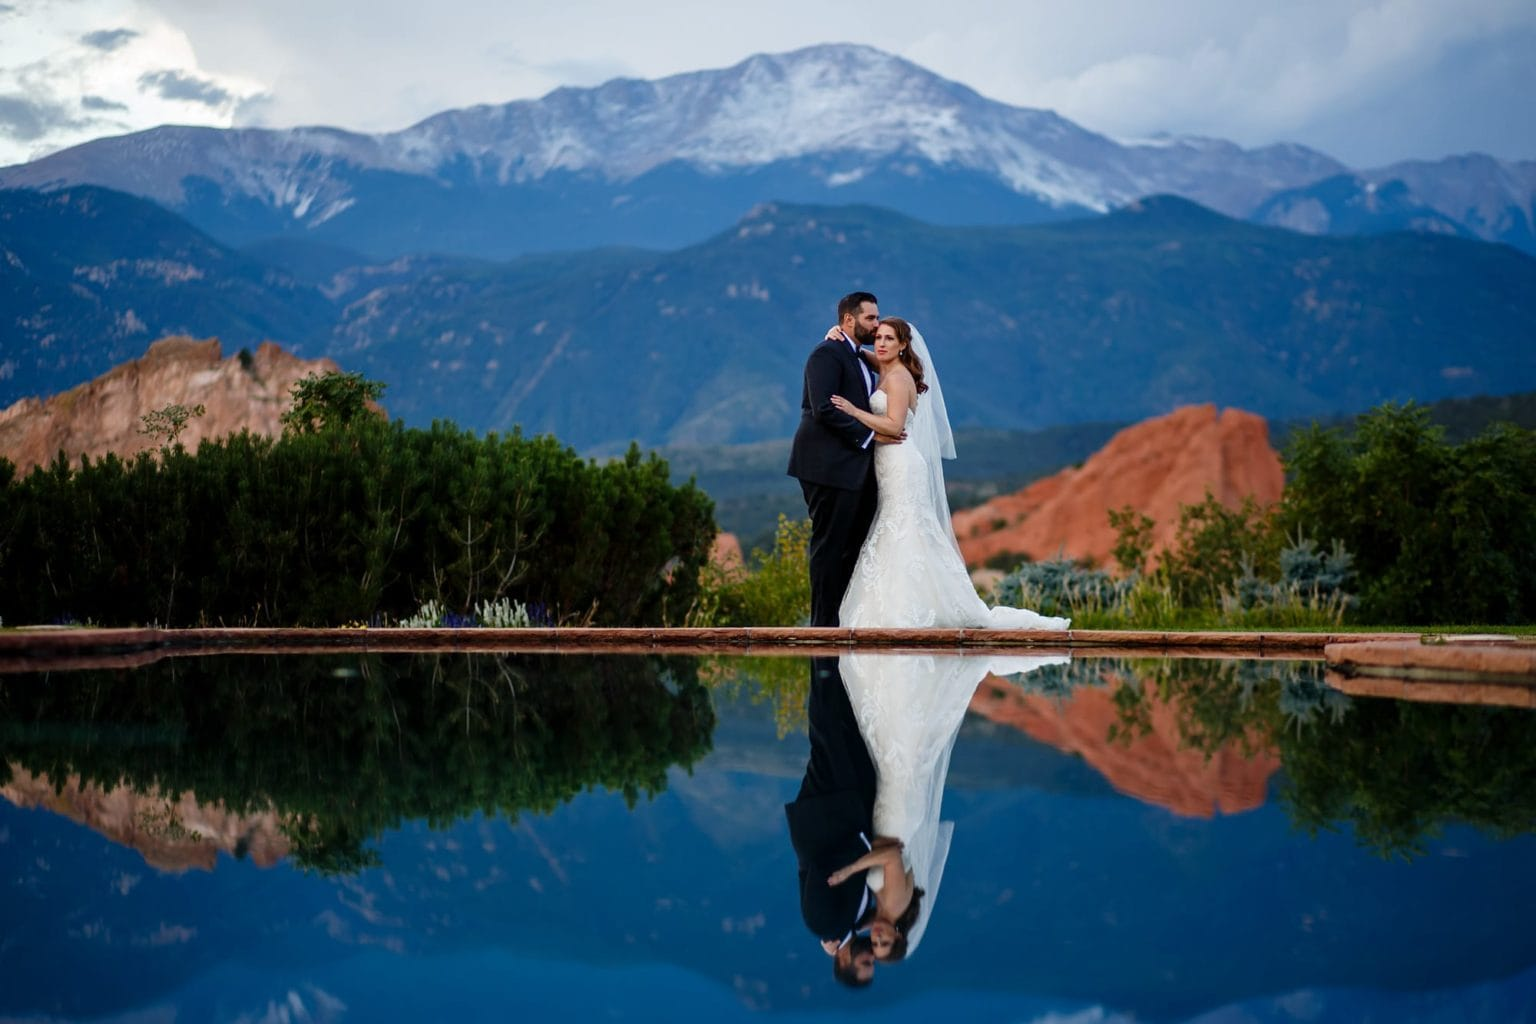 Wedding couple reflected in the pool at Garden of the Gods